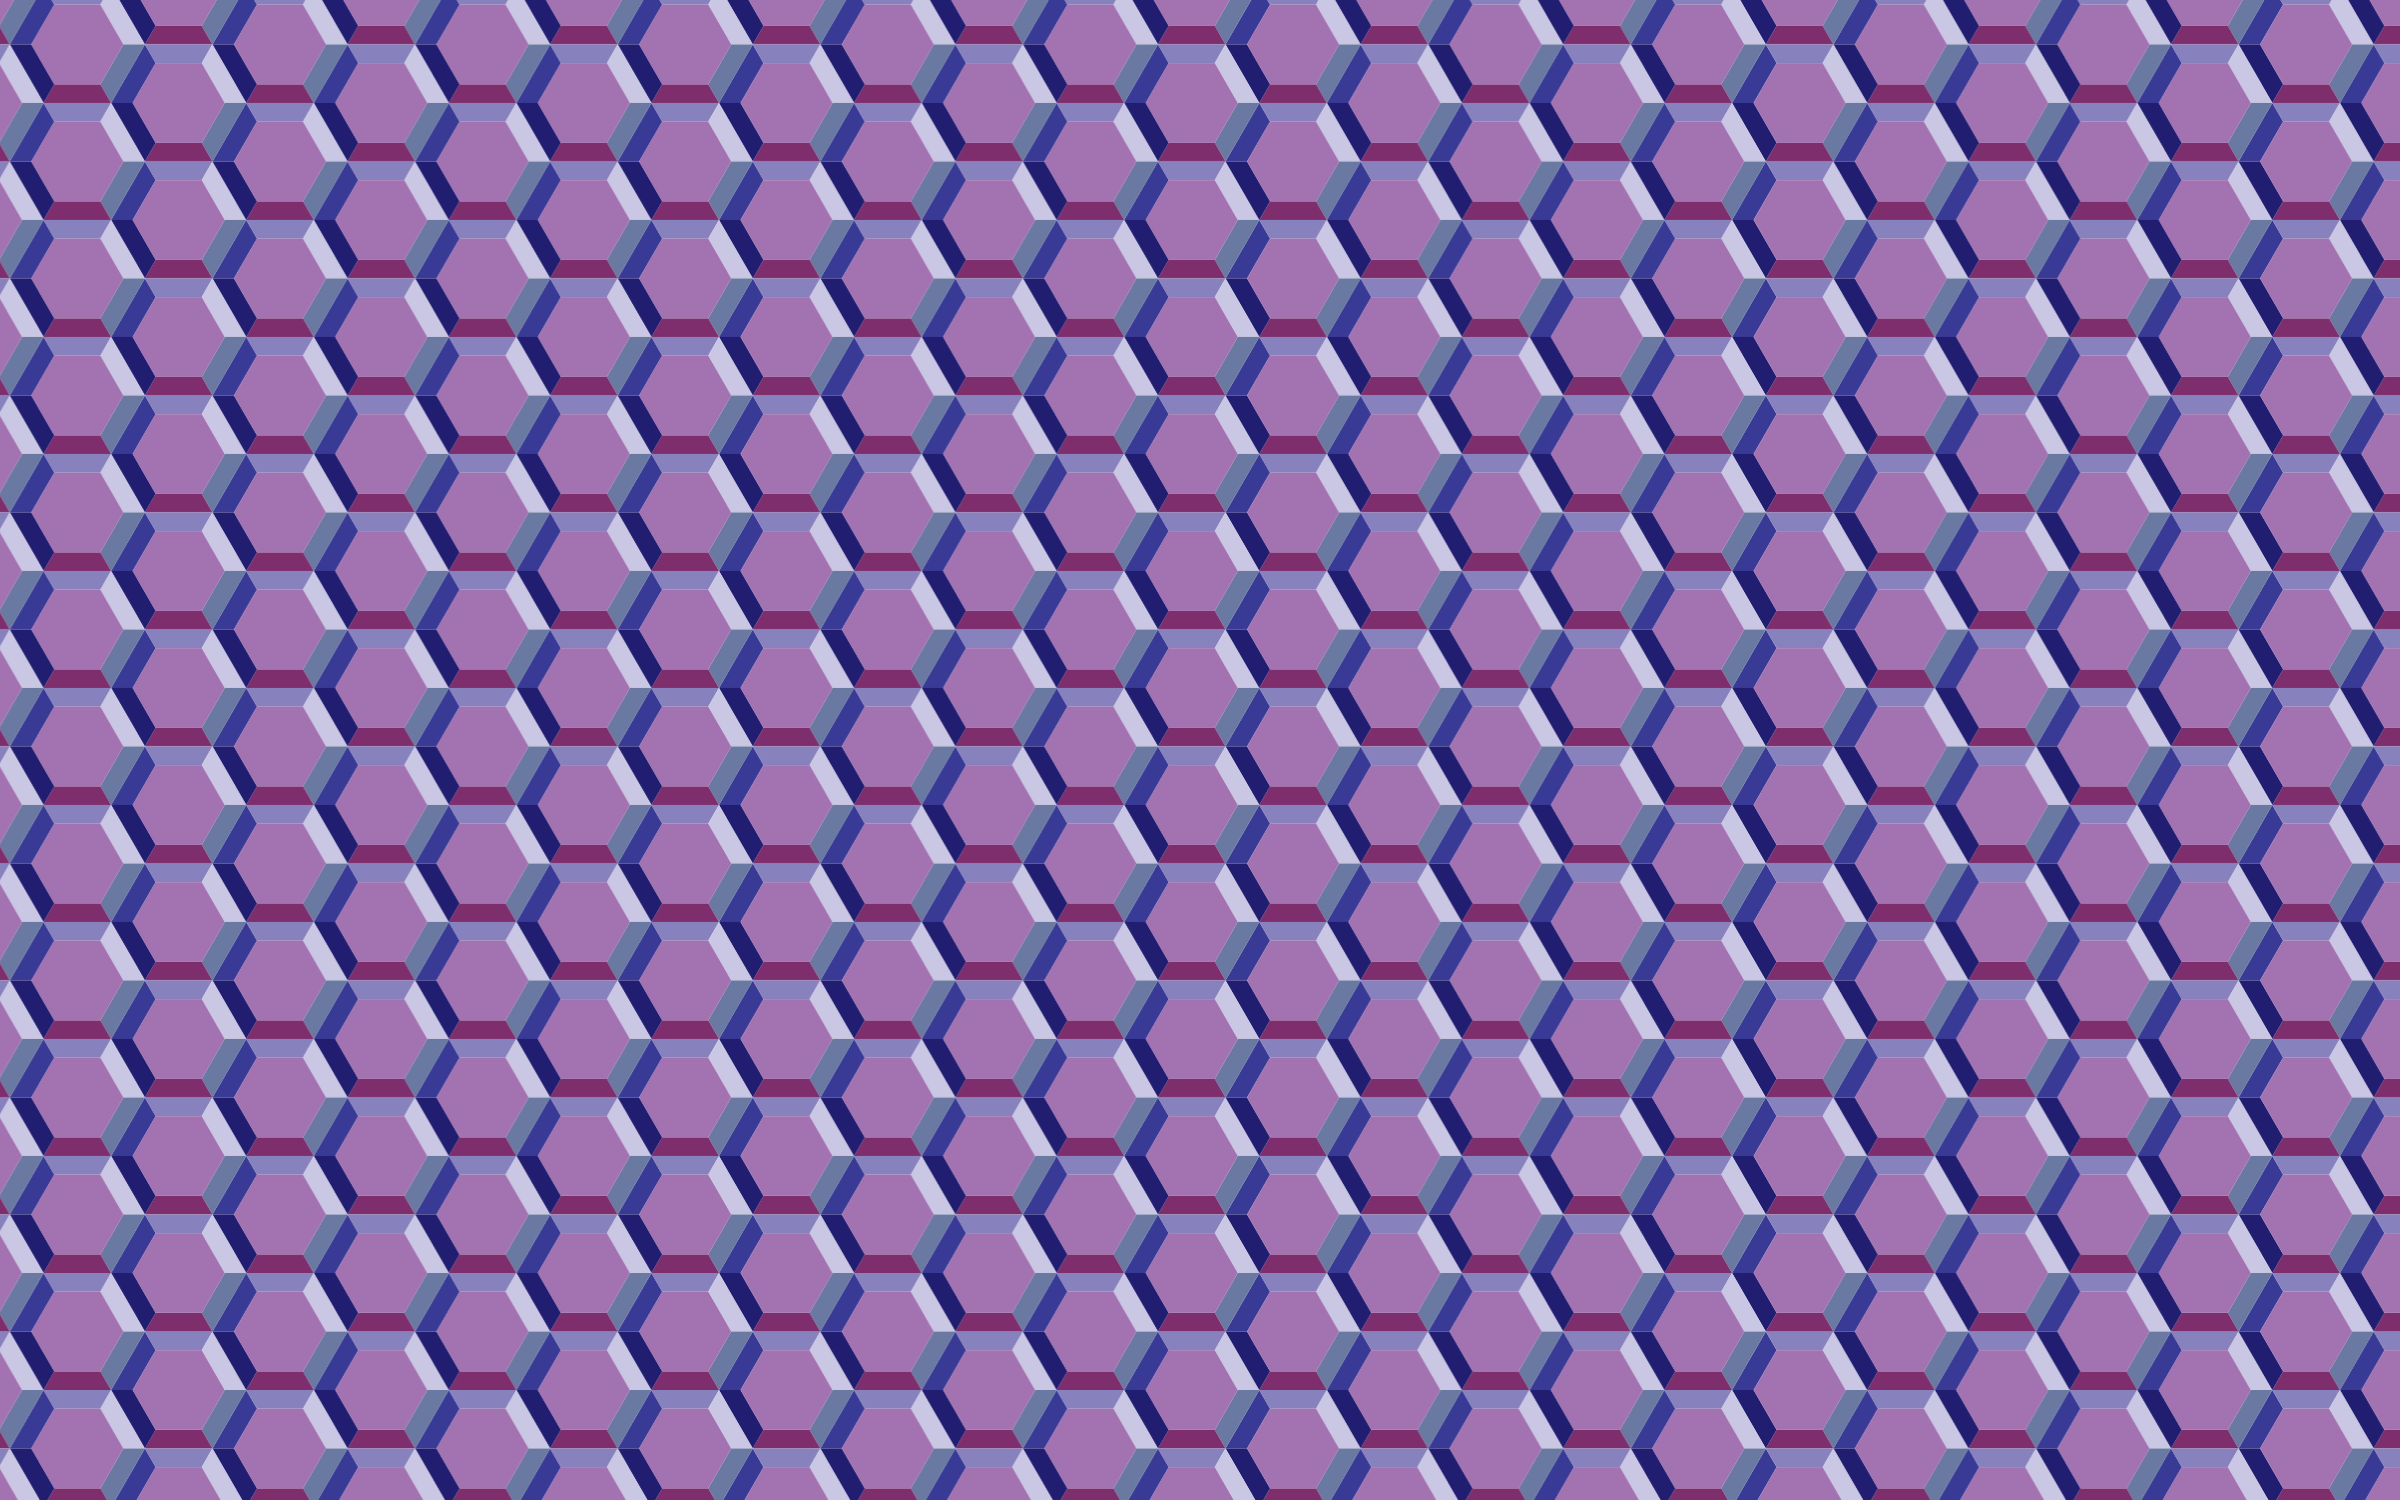 Seamless Hexagonal Gem Pattern by GDJ